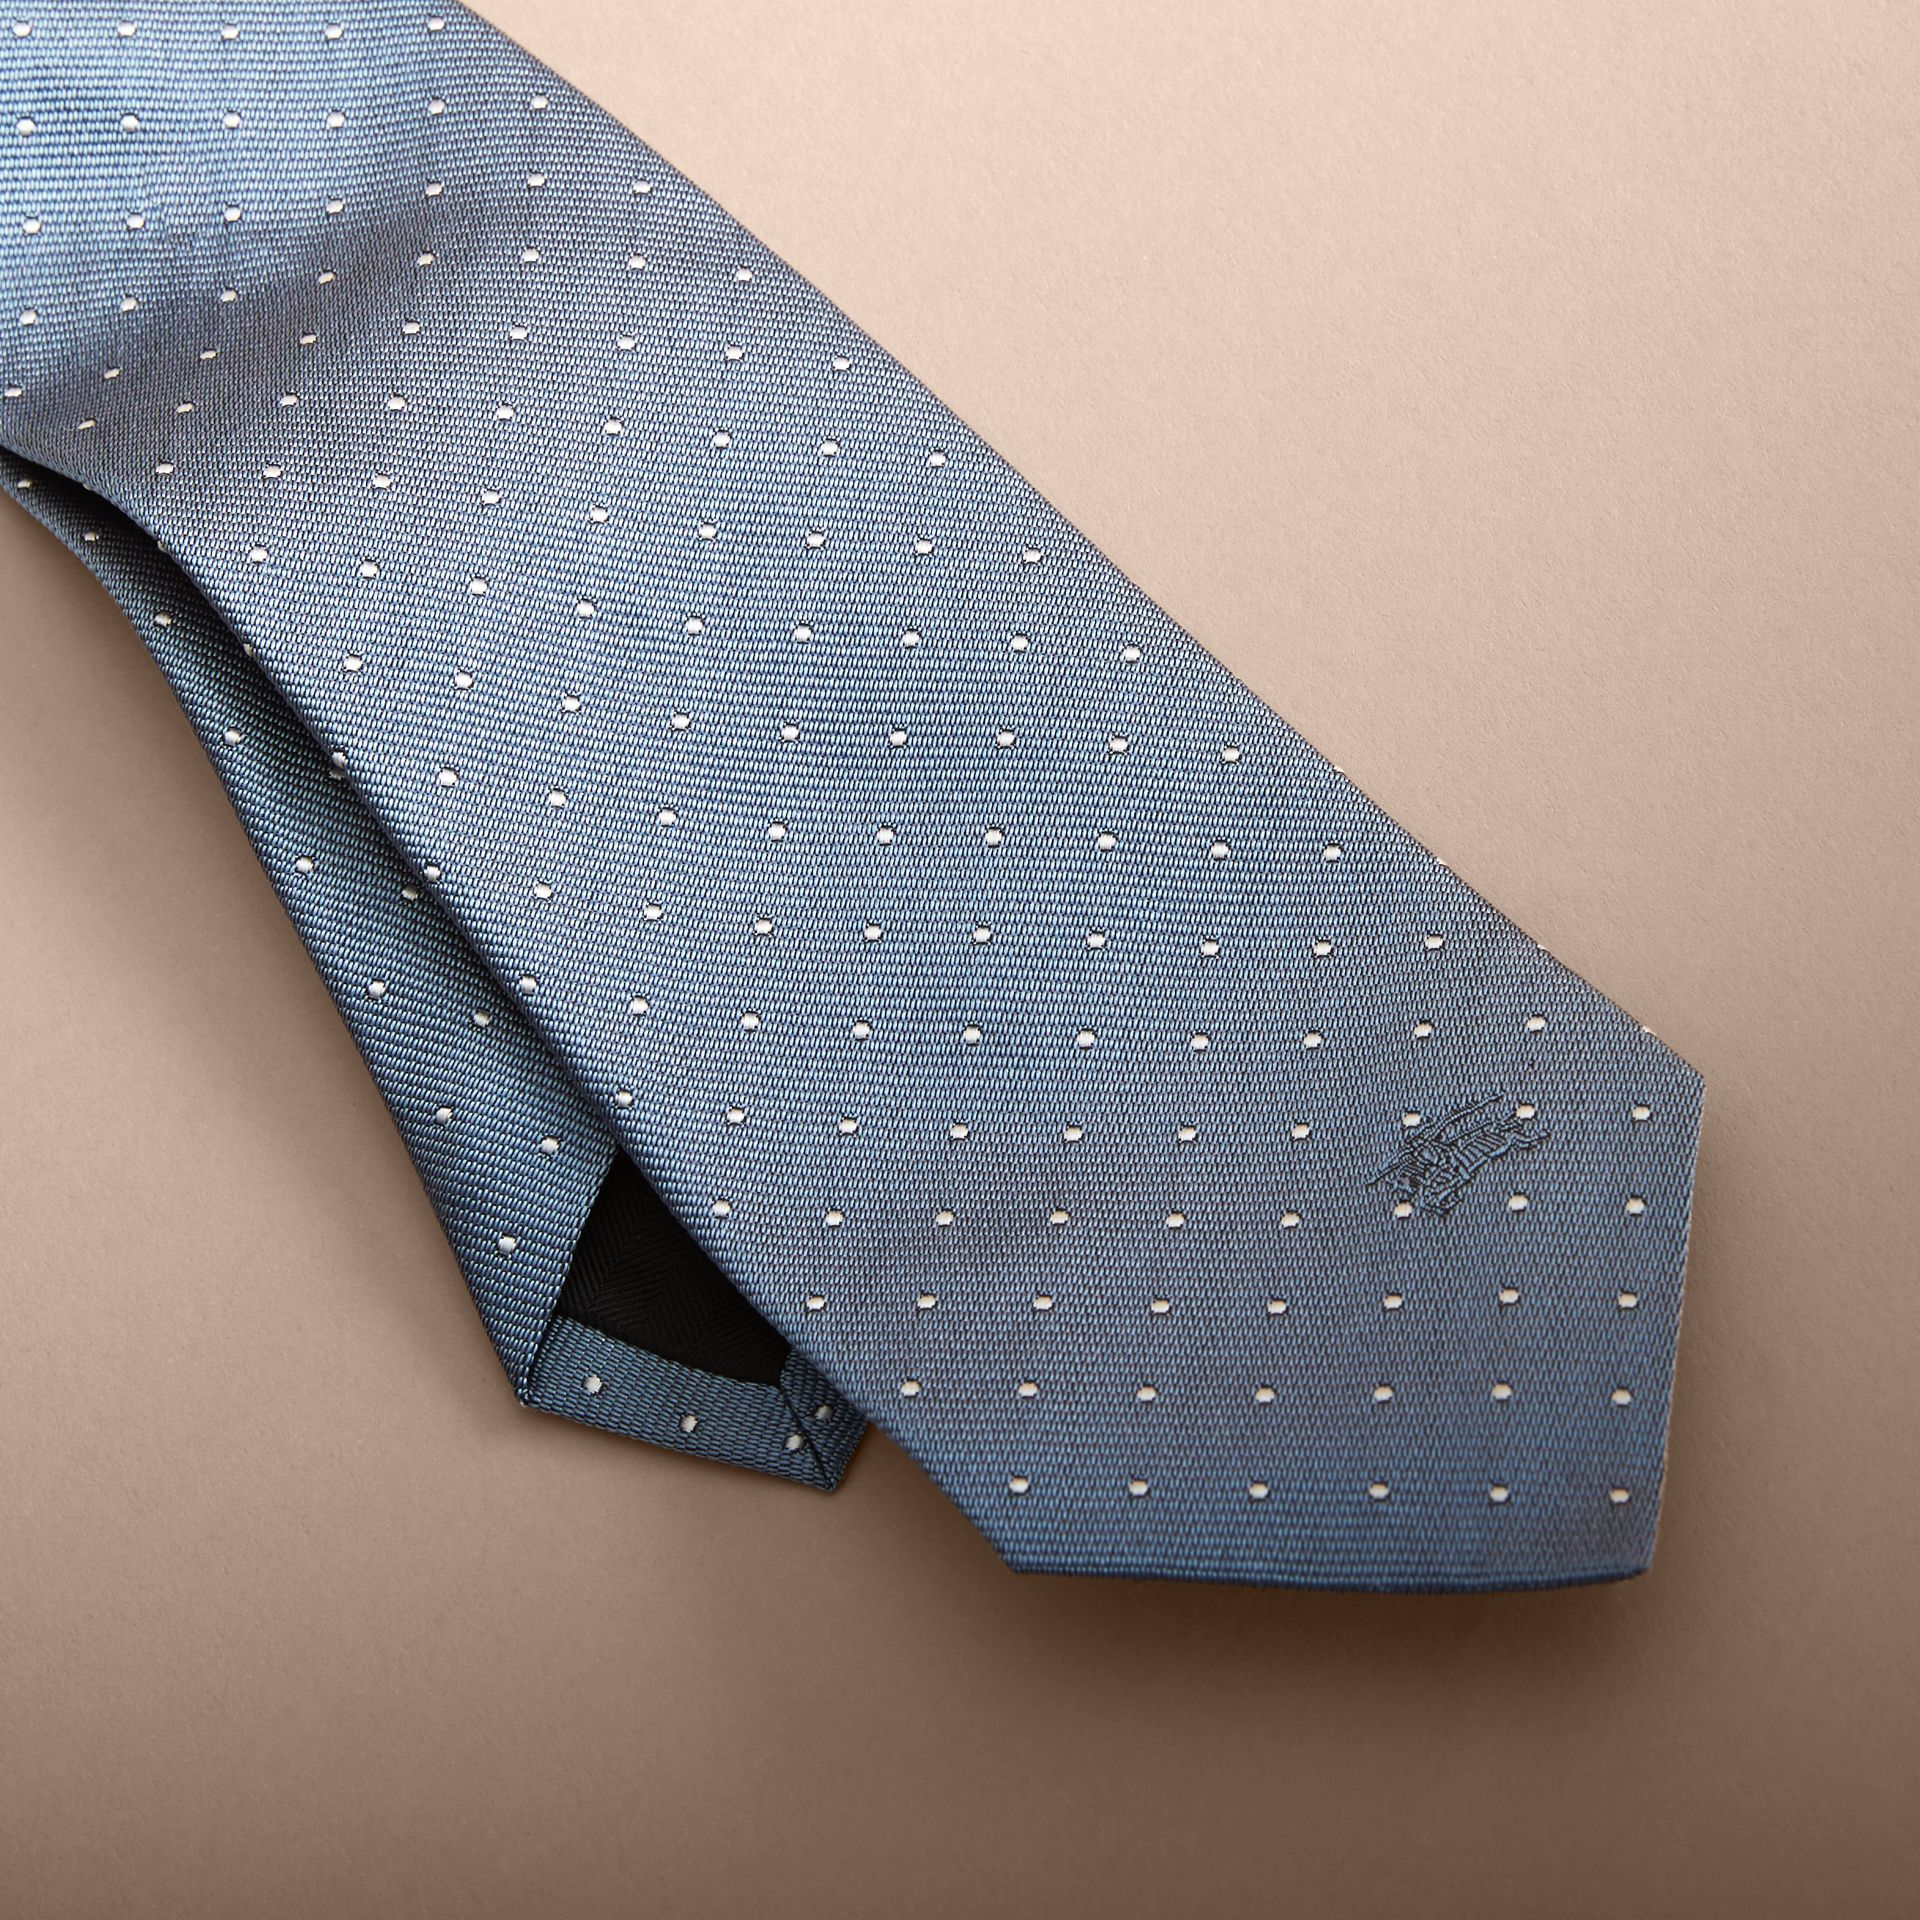 Modern Cut Polka-dot Silk Tie in Light Blue - Men | Burberry United Kingdom - gallery image 2